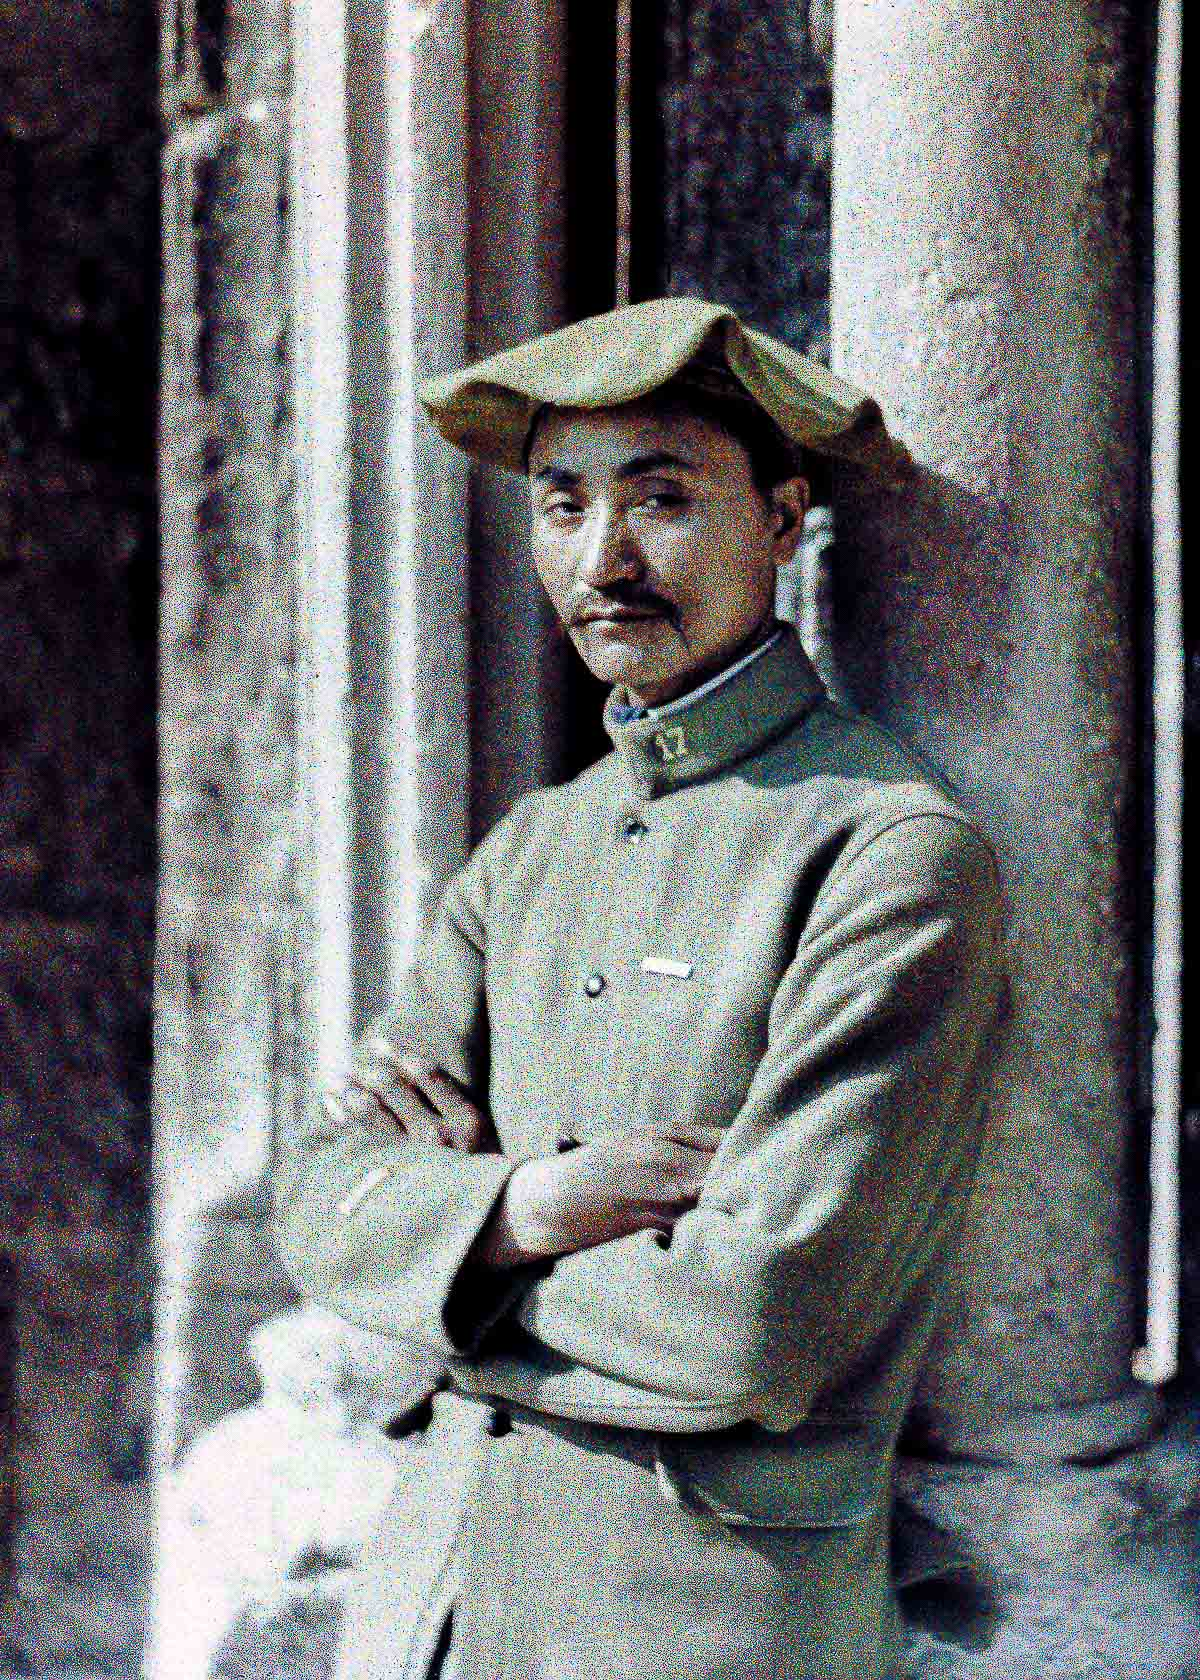 Worker from Indochina on the Western Front. 1917. Color photo (Autochrome Lumière) by Fernand Cuville (1887-1927). Soissons was taken over by German troops twice during World War I and was heavily damaged by artillery fire. Soissons, Aisne, France. (Photo by Galerie Bilderwelt/Getty Images)